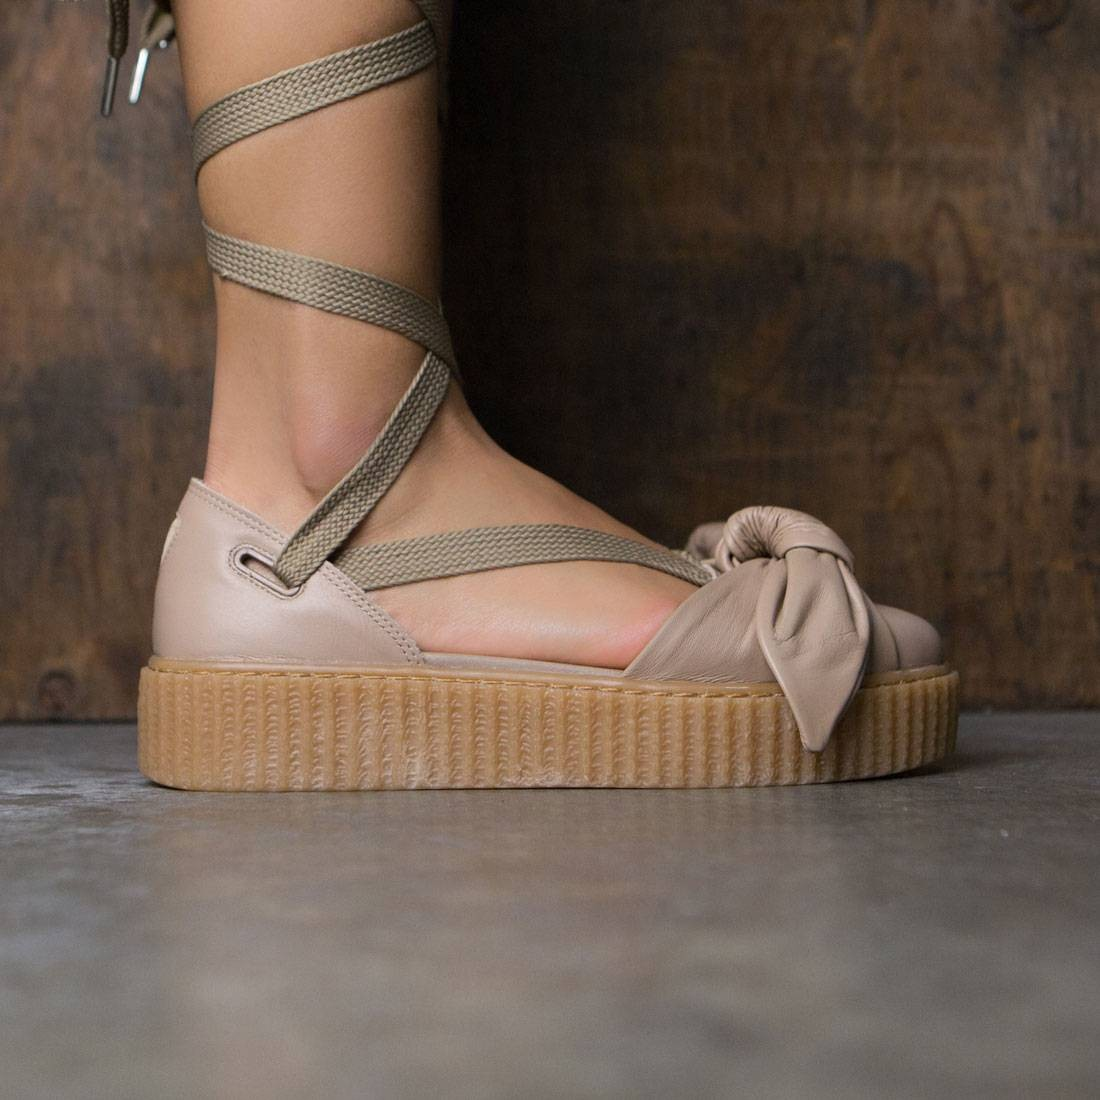 competitive price a5d2a 5c2da Puma x Fenty By Rihanna Women Bow Creeper Sandal (natural / oatmeal)